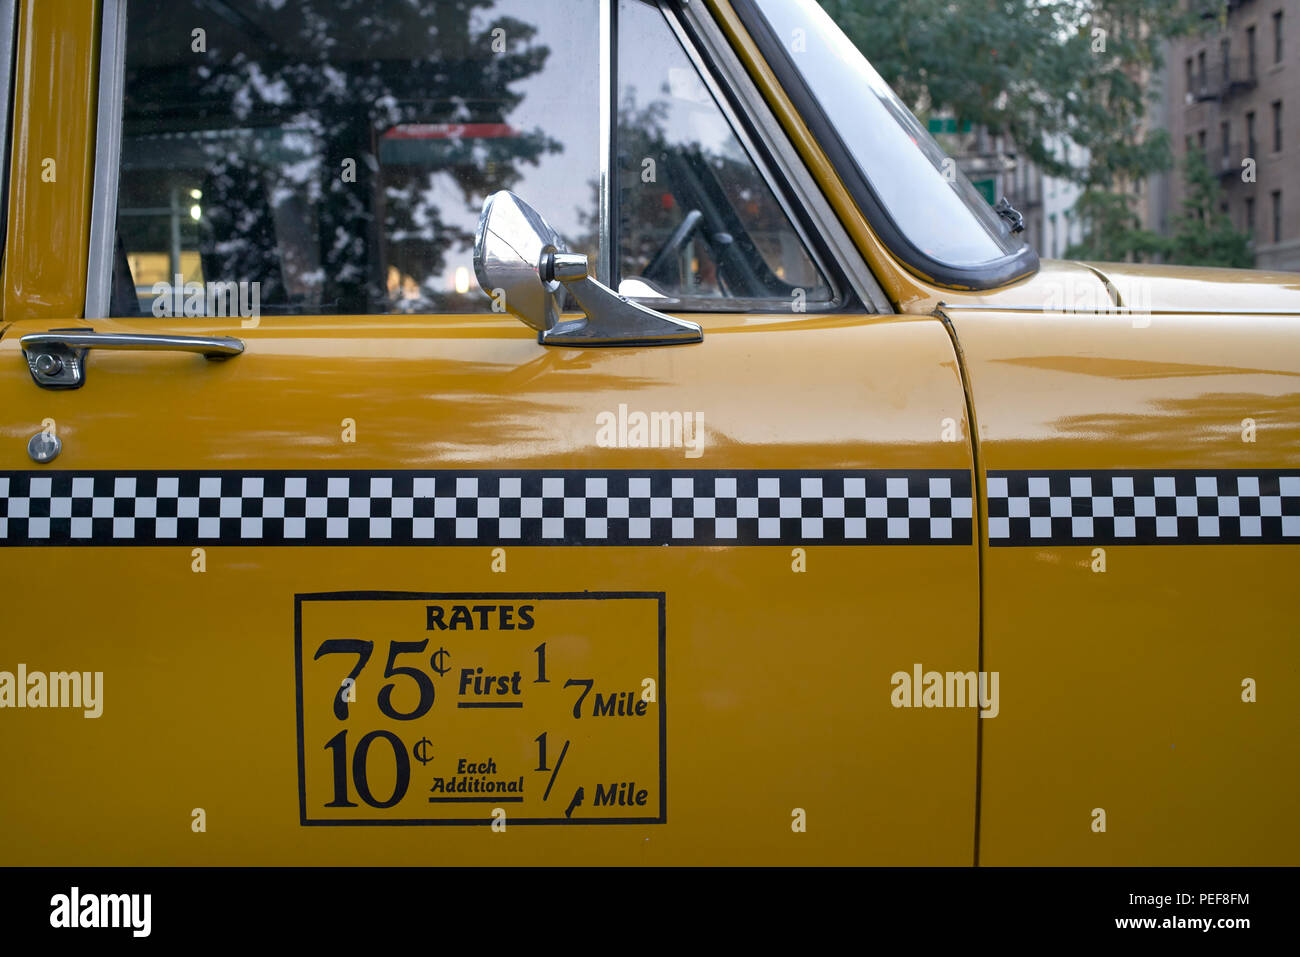 Detail of door with rates display of New York City vintage Checker taxicab Stock Photo